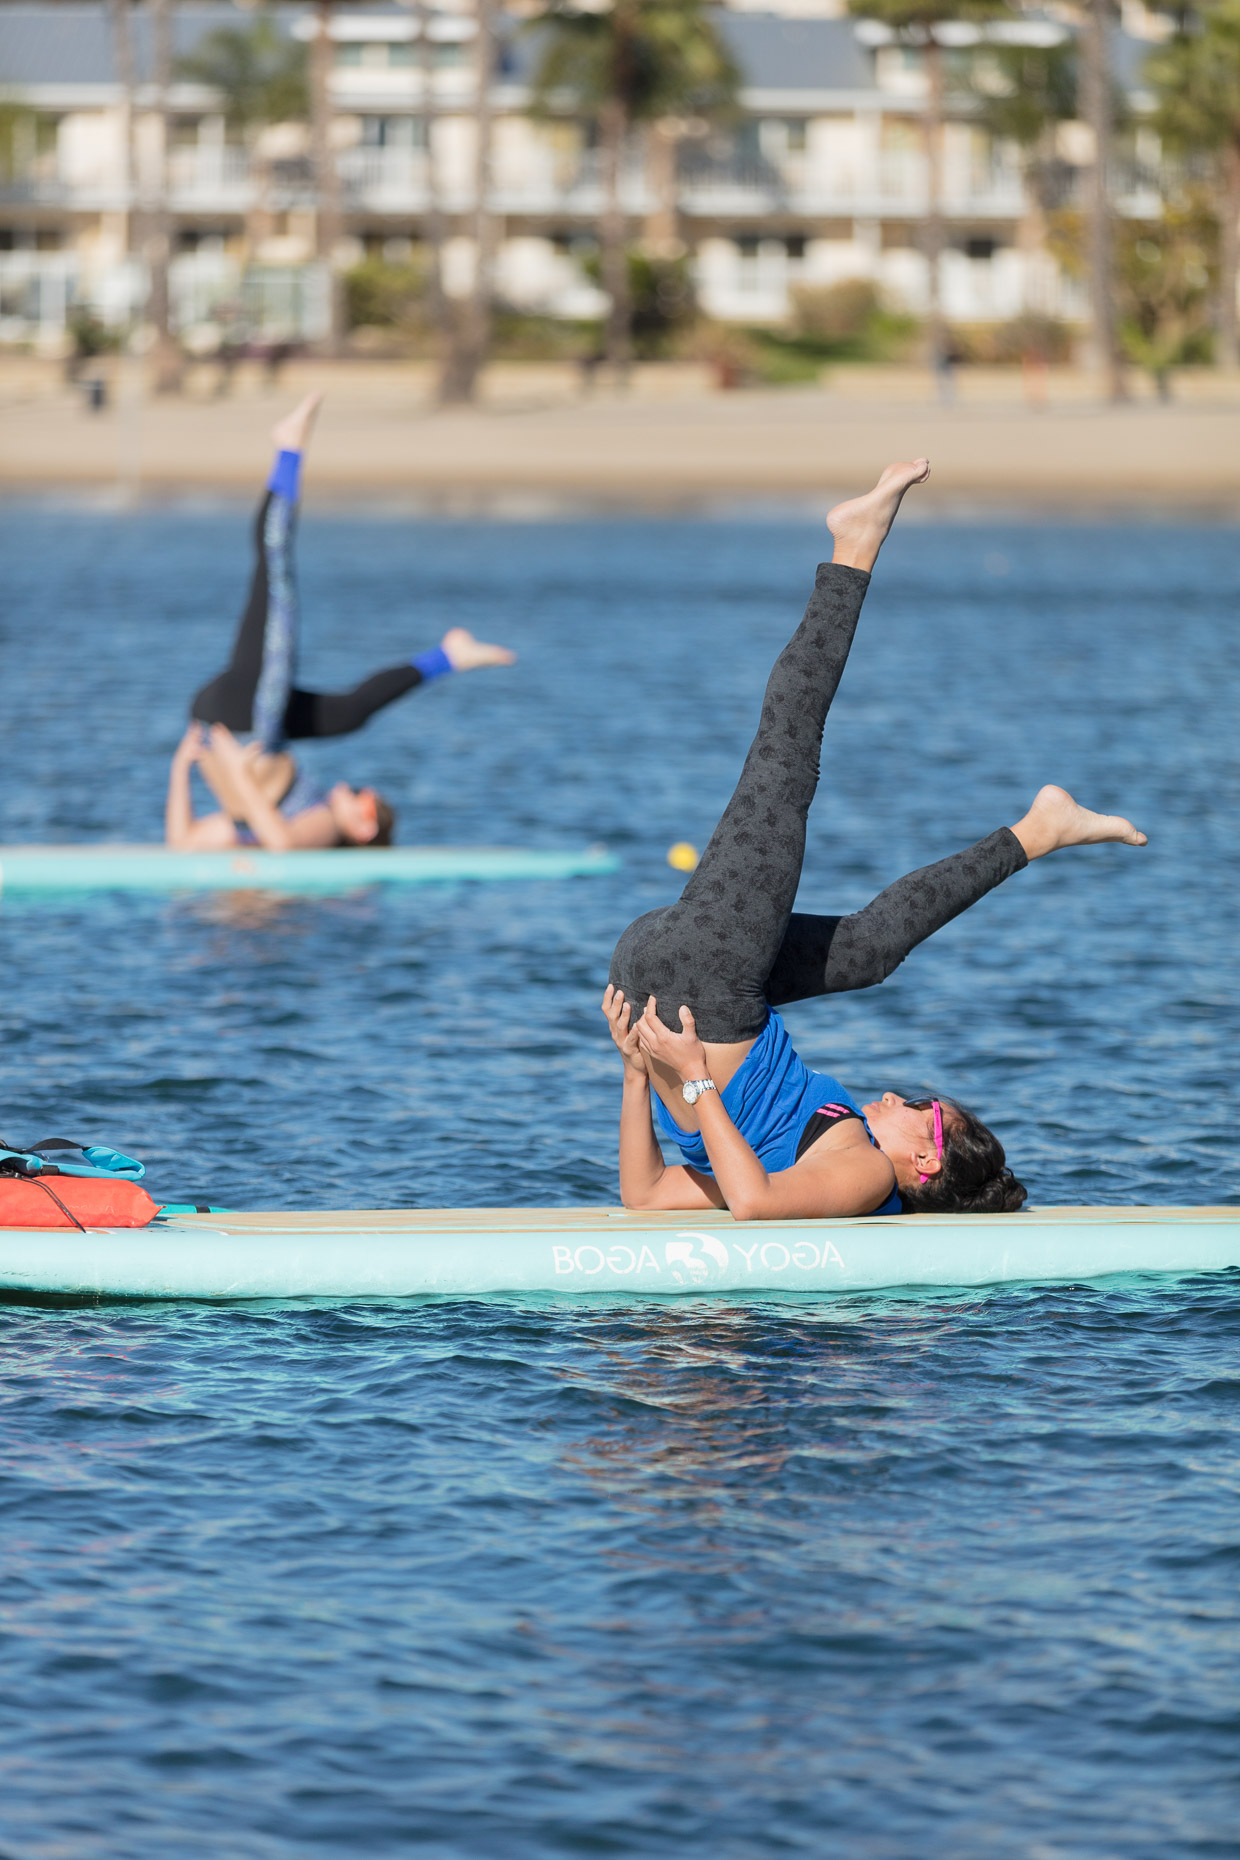 Women practicing yoga will on stand up paddle boards on water in Marina del Rey, California